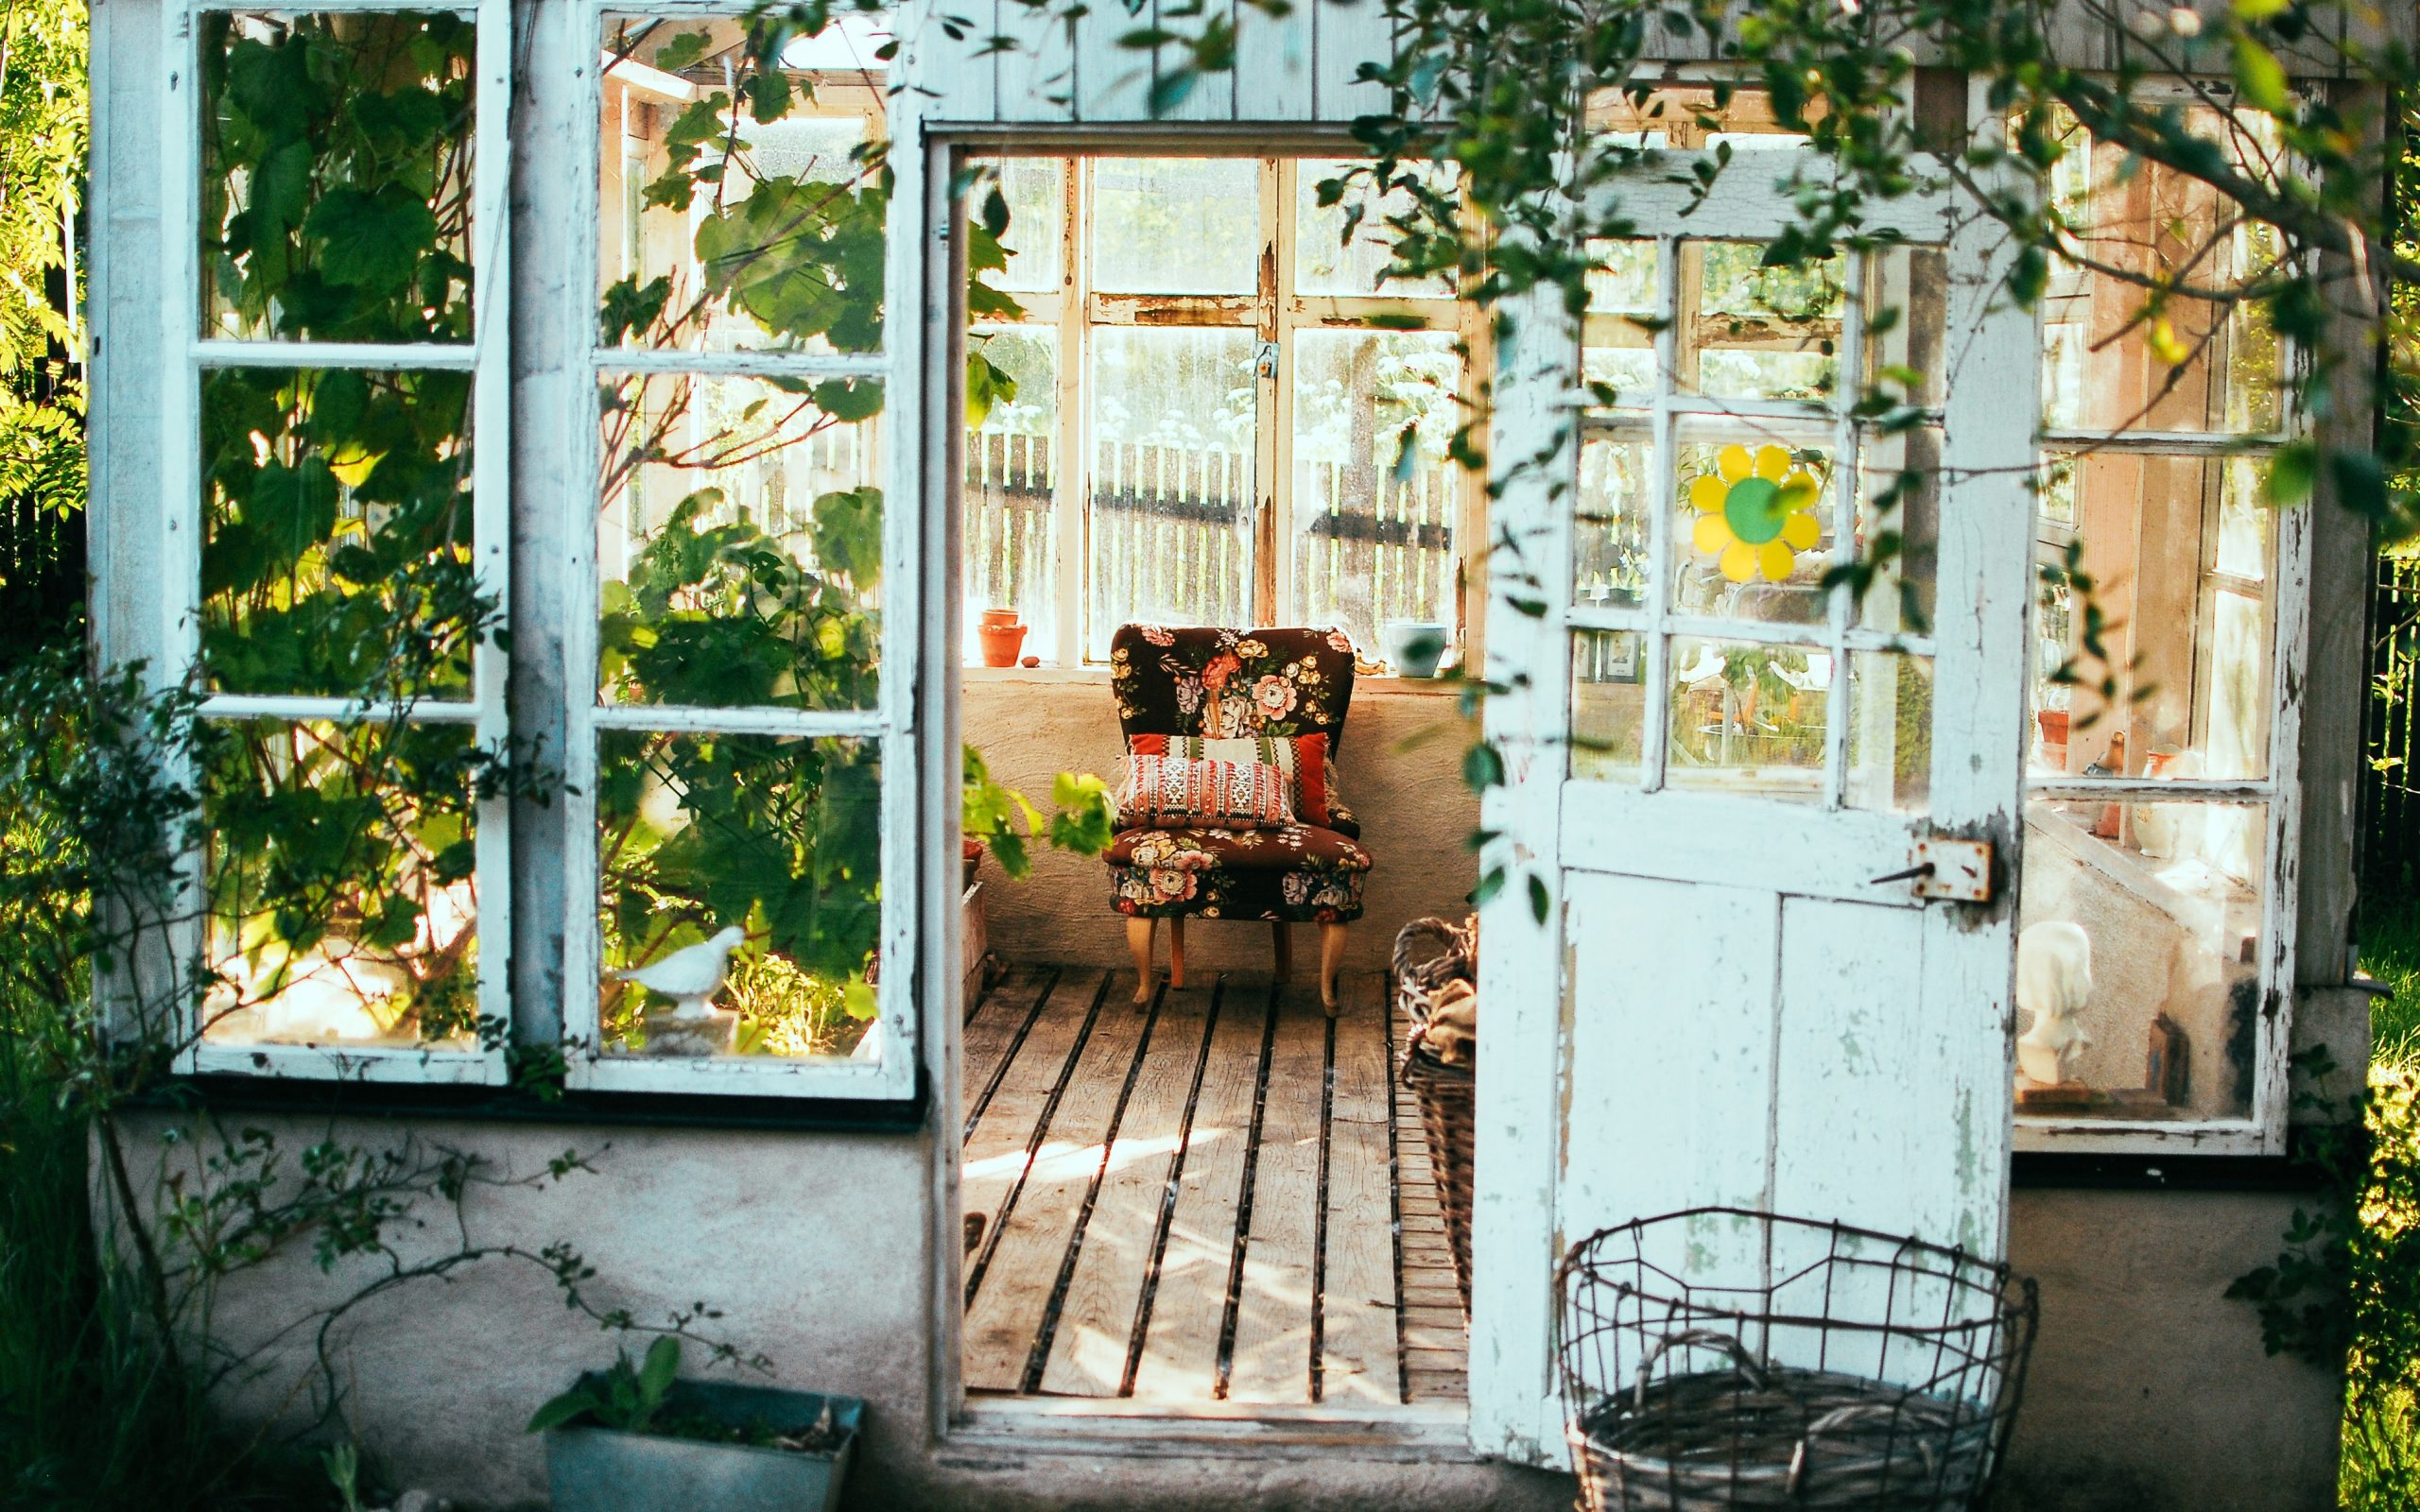 conservatory - photo by arno smit - unsplash